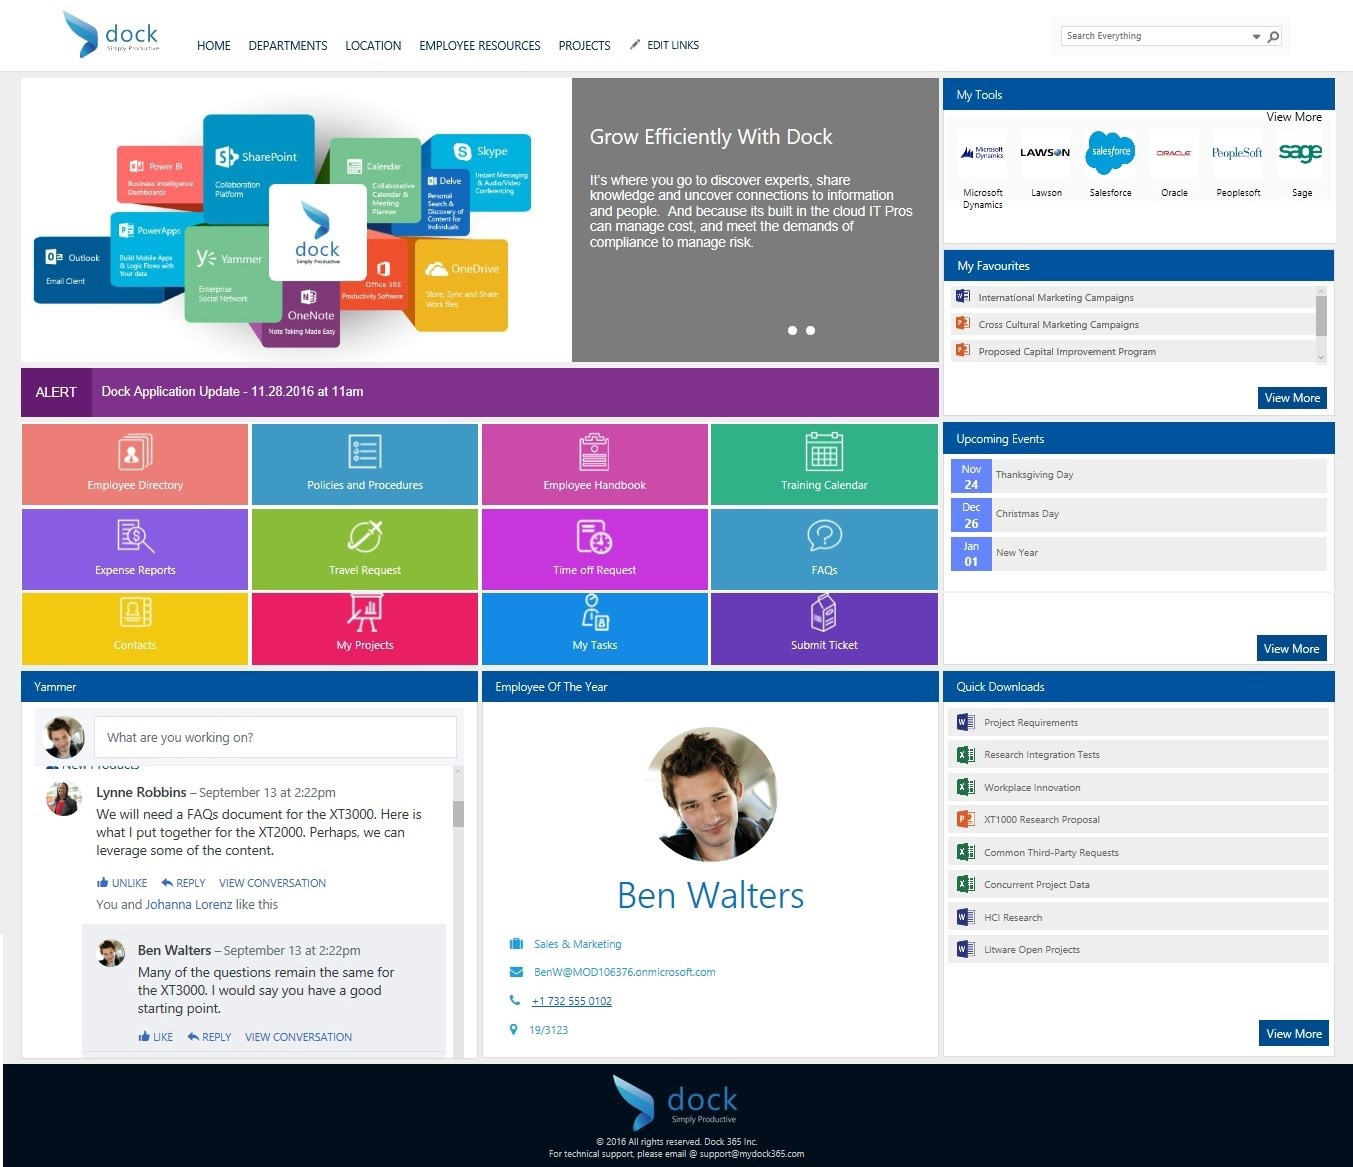 sharepoint intranet solutions Why SharePoint Online for your Company Intranet? – Dock Intranet ...